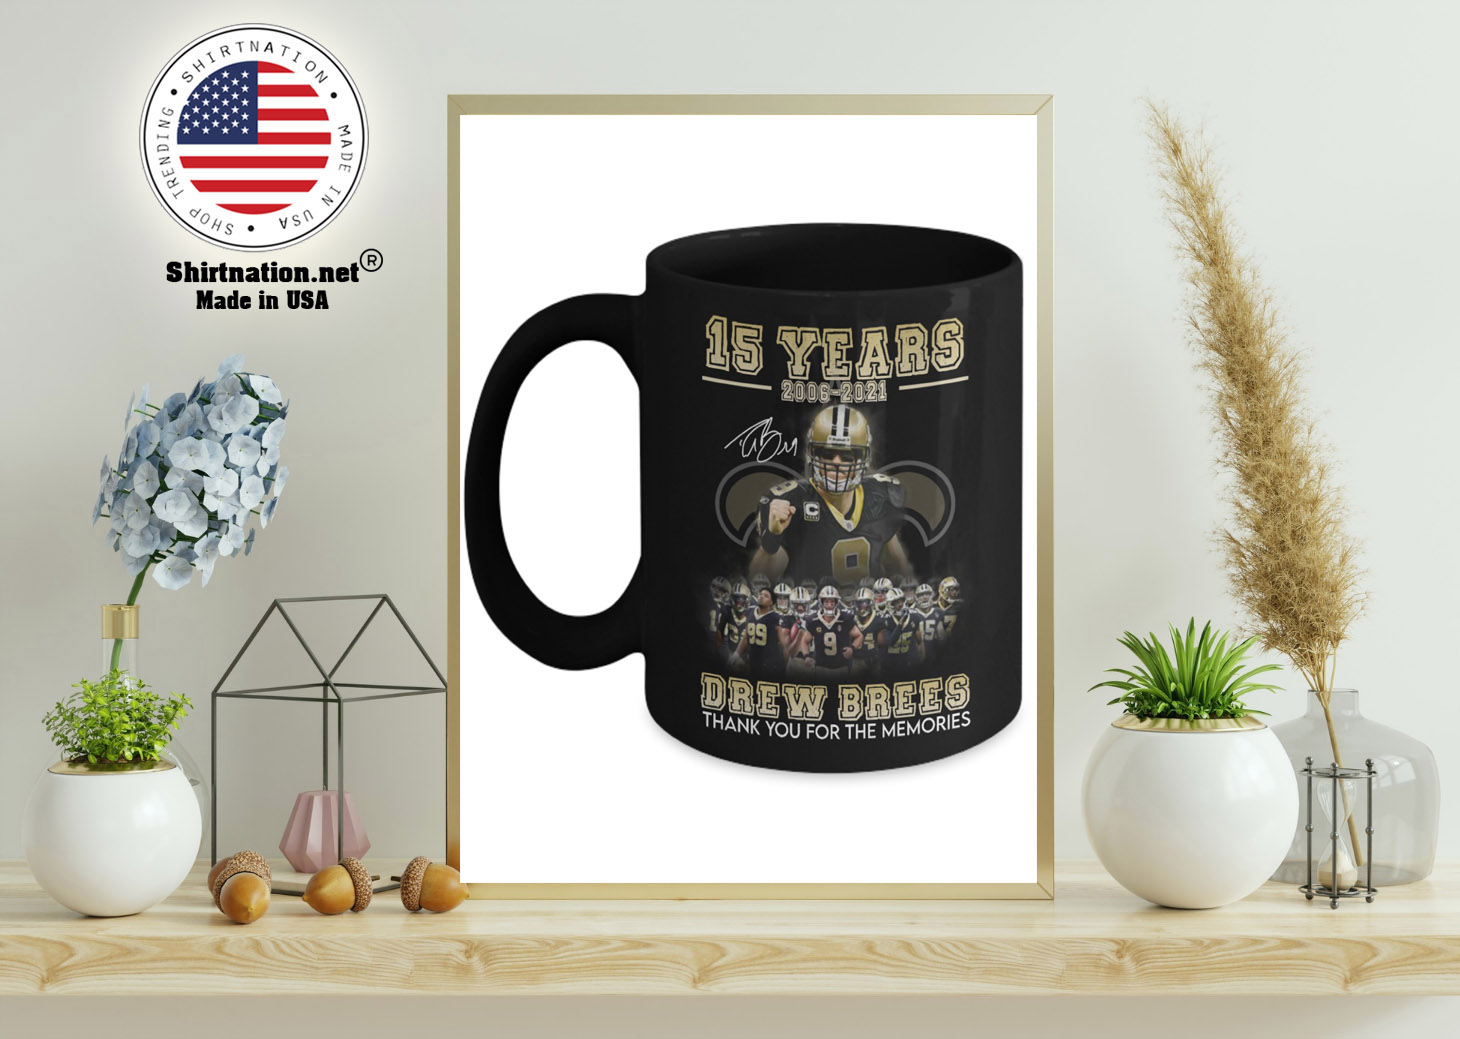 15 years 2006 2021 drew brees thank you for the memories mug 11